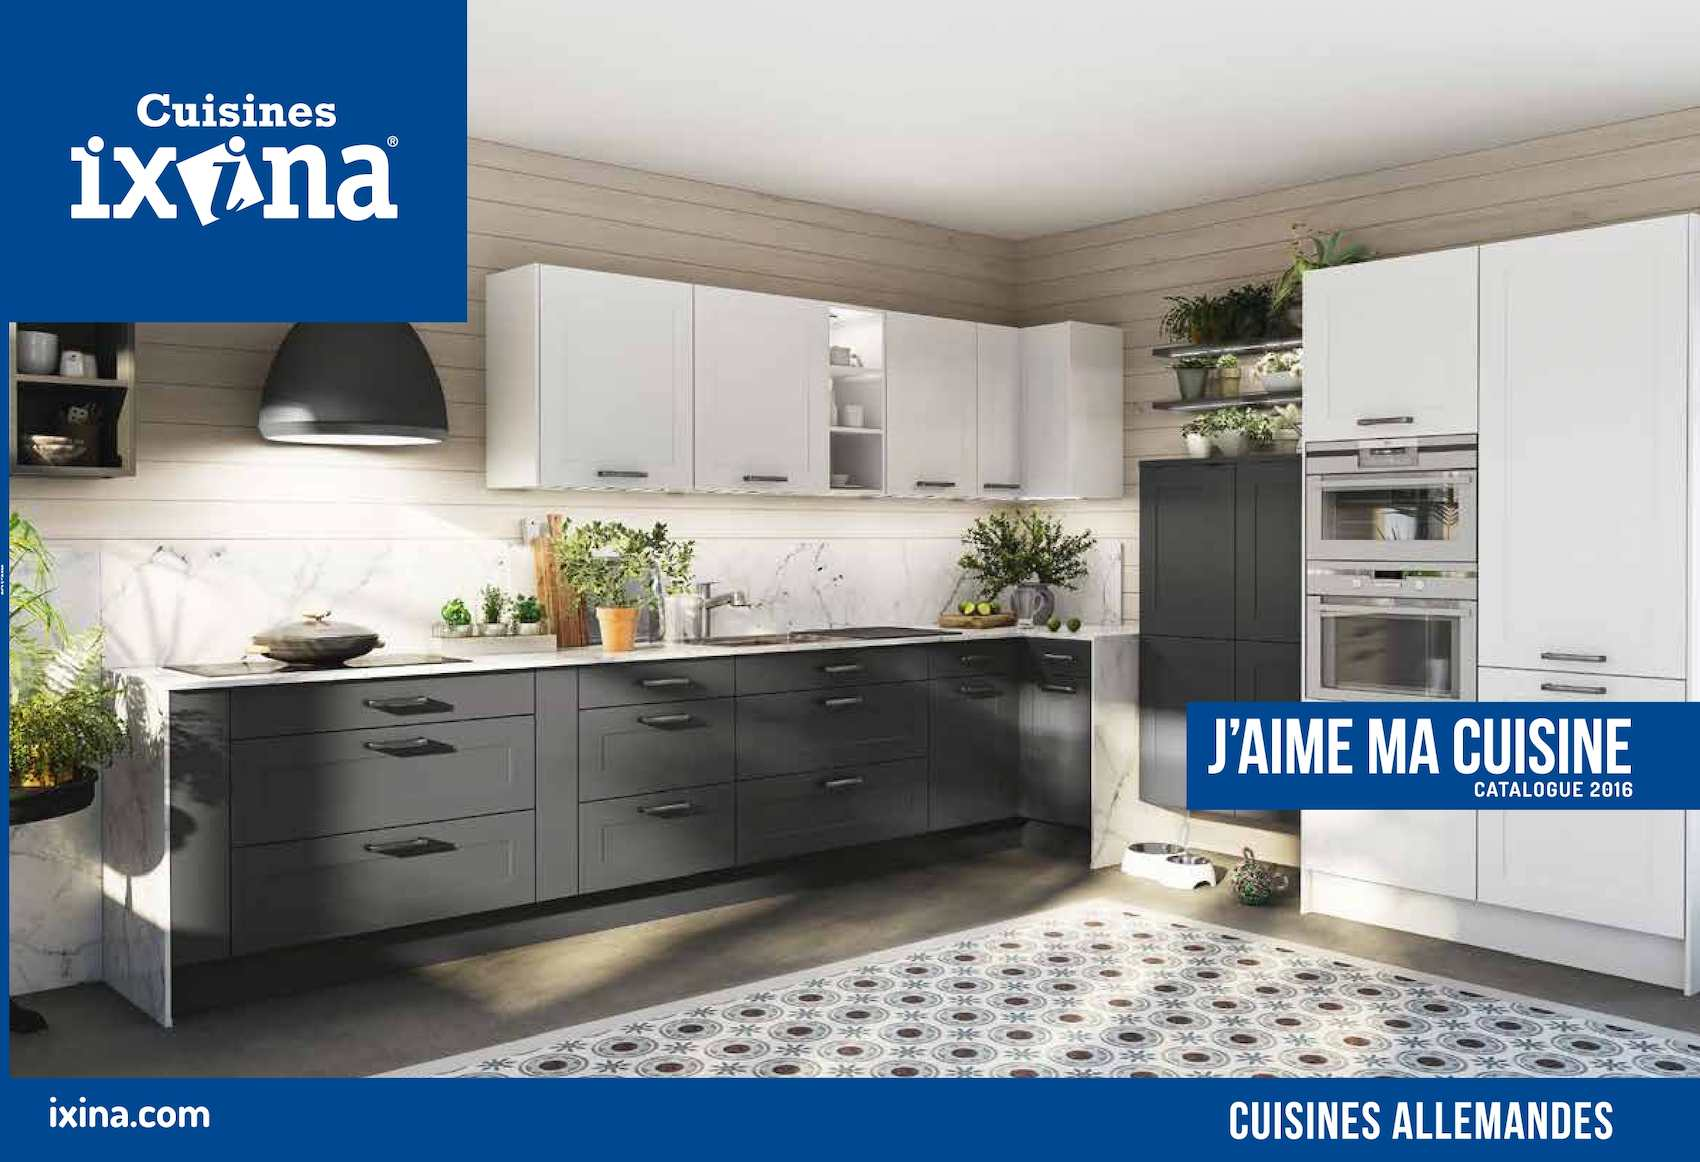 Calam o catalogue ixina 2016 final for Voir des cuisines modernes